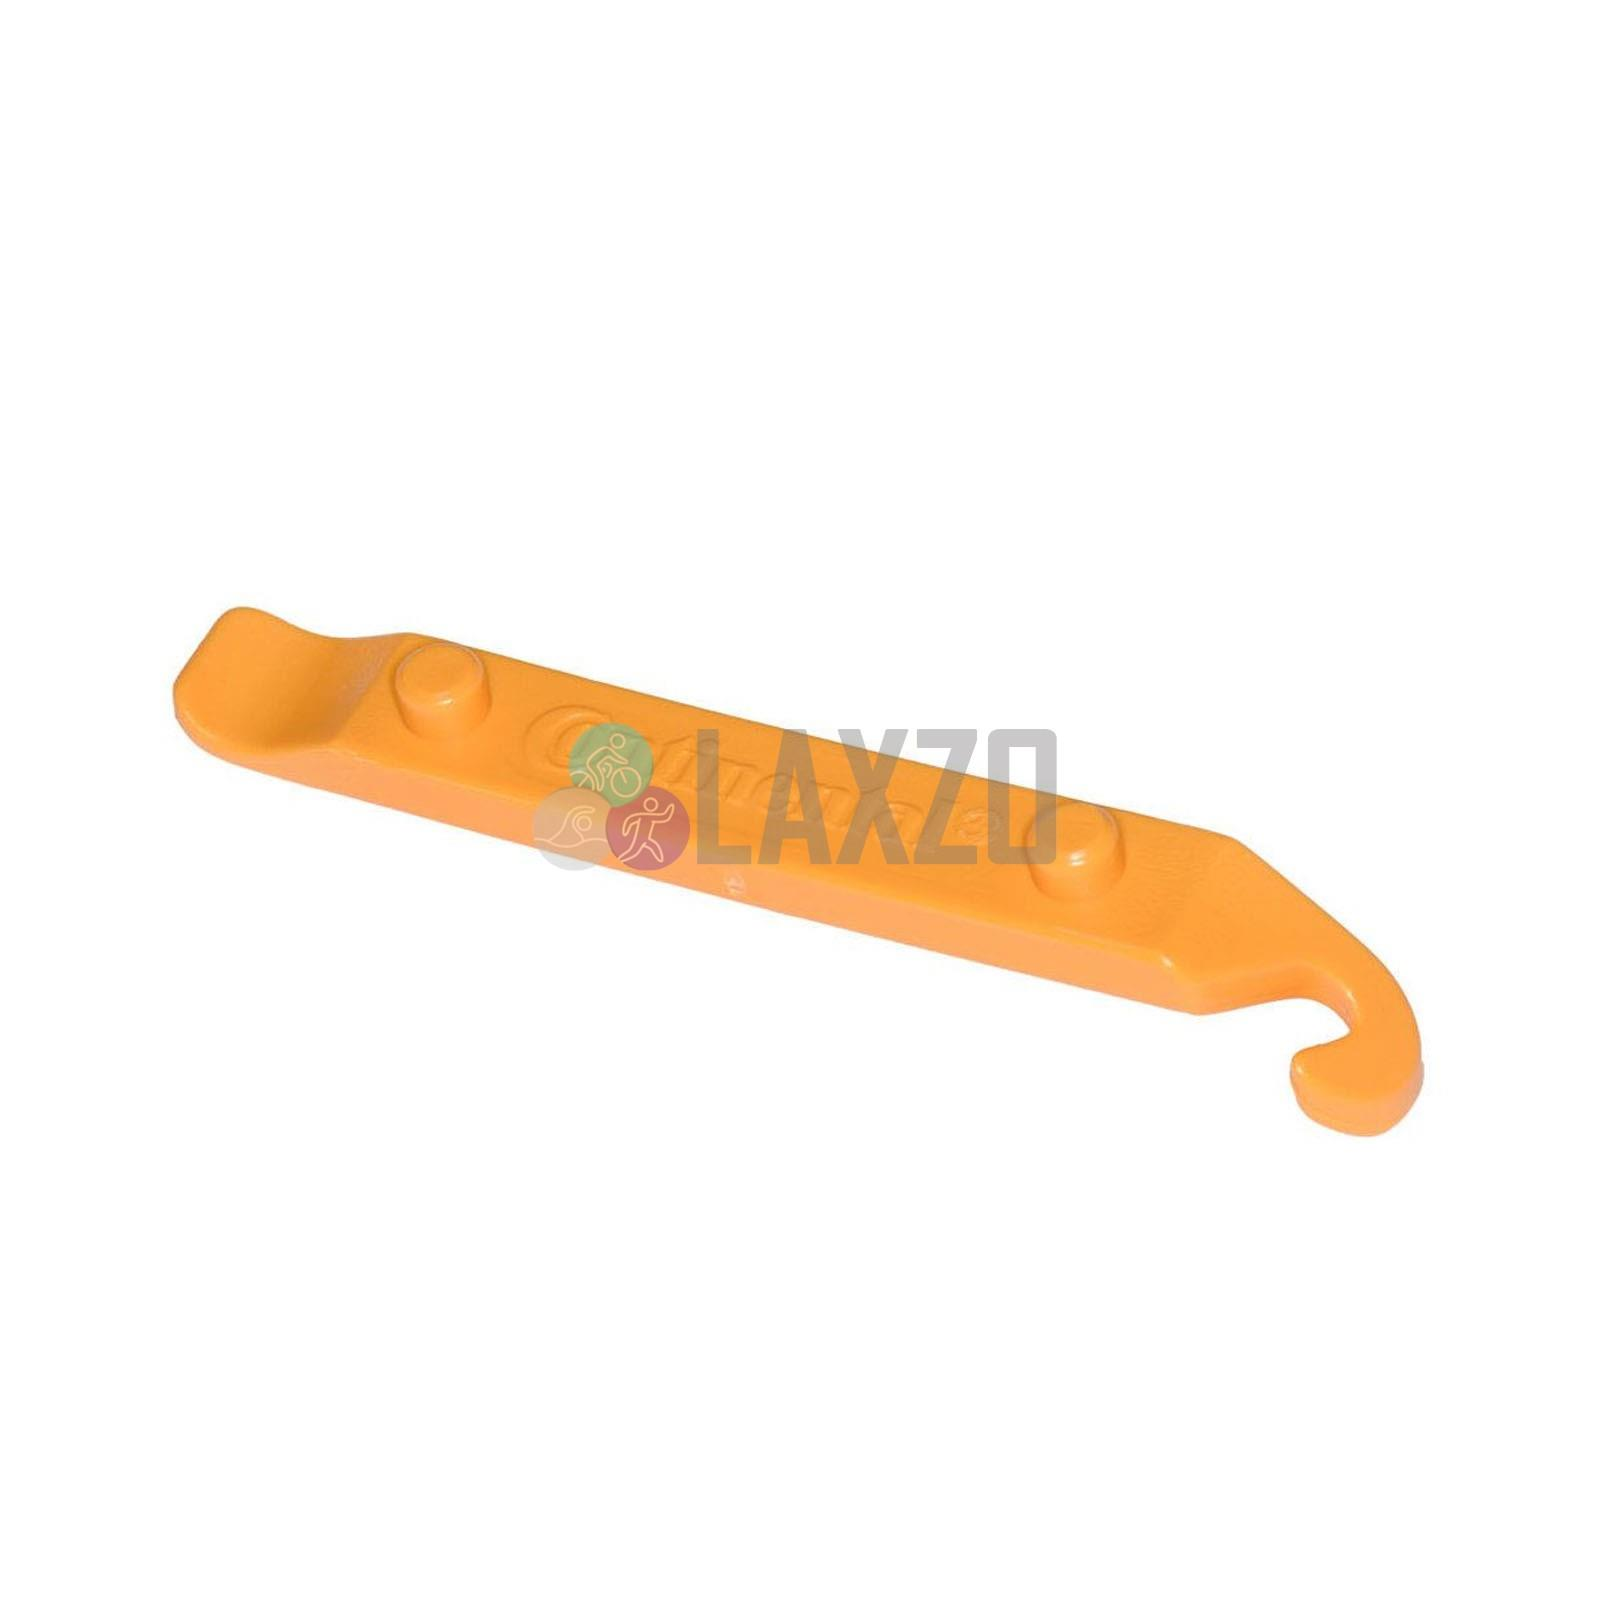 Cycle Cycling Mountain Bike MEV XC Puncture Repair Tyre Levers/_WK